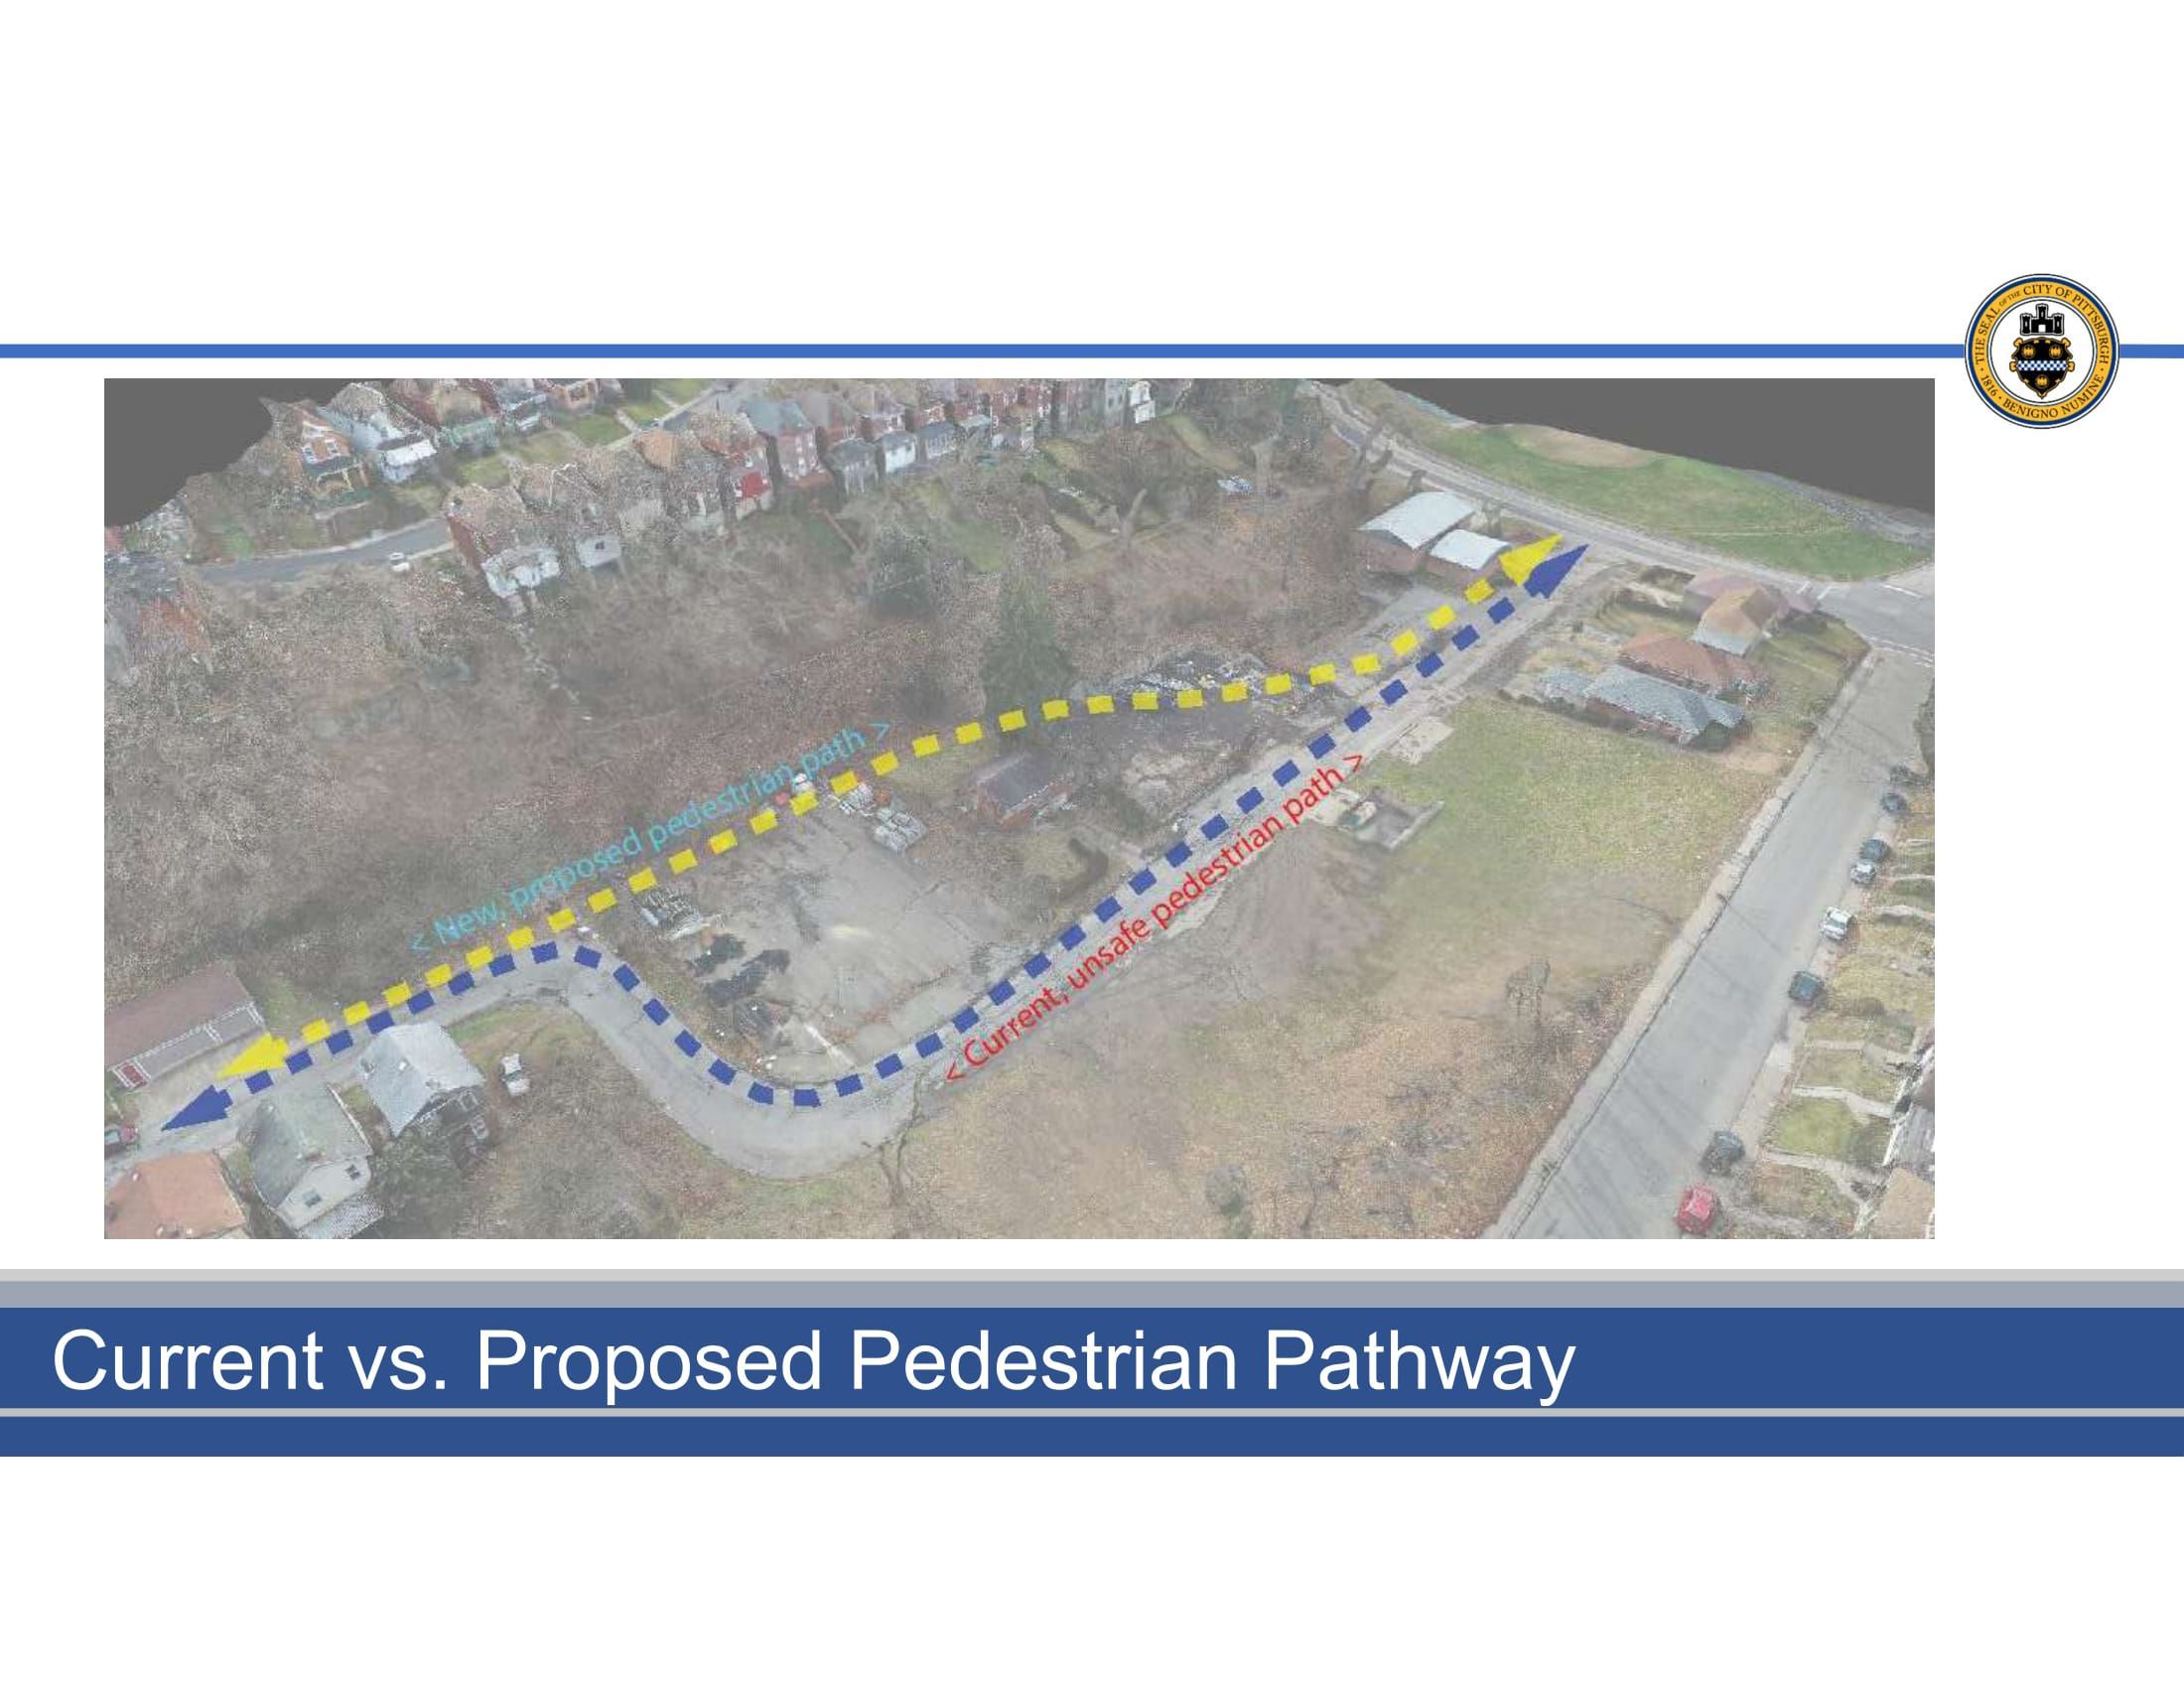 Current vs proposed pathway